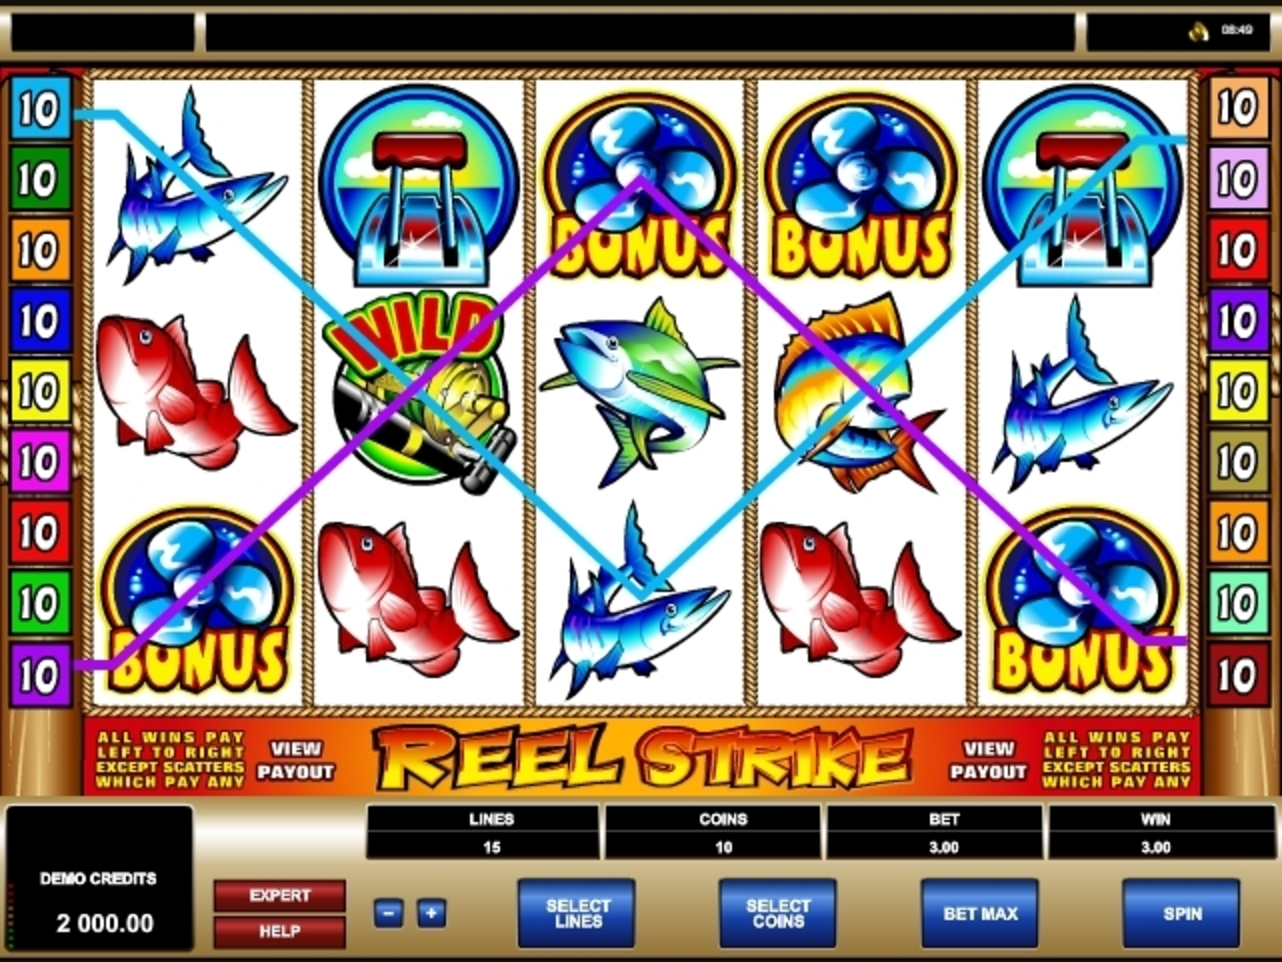 Win Money in Reel Strike Free Slot Game by Microgaming